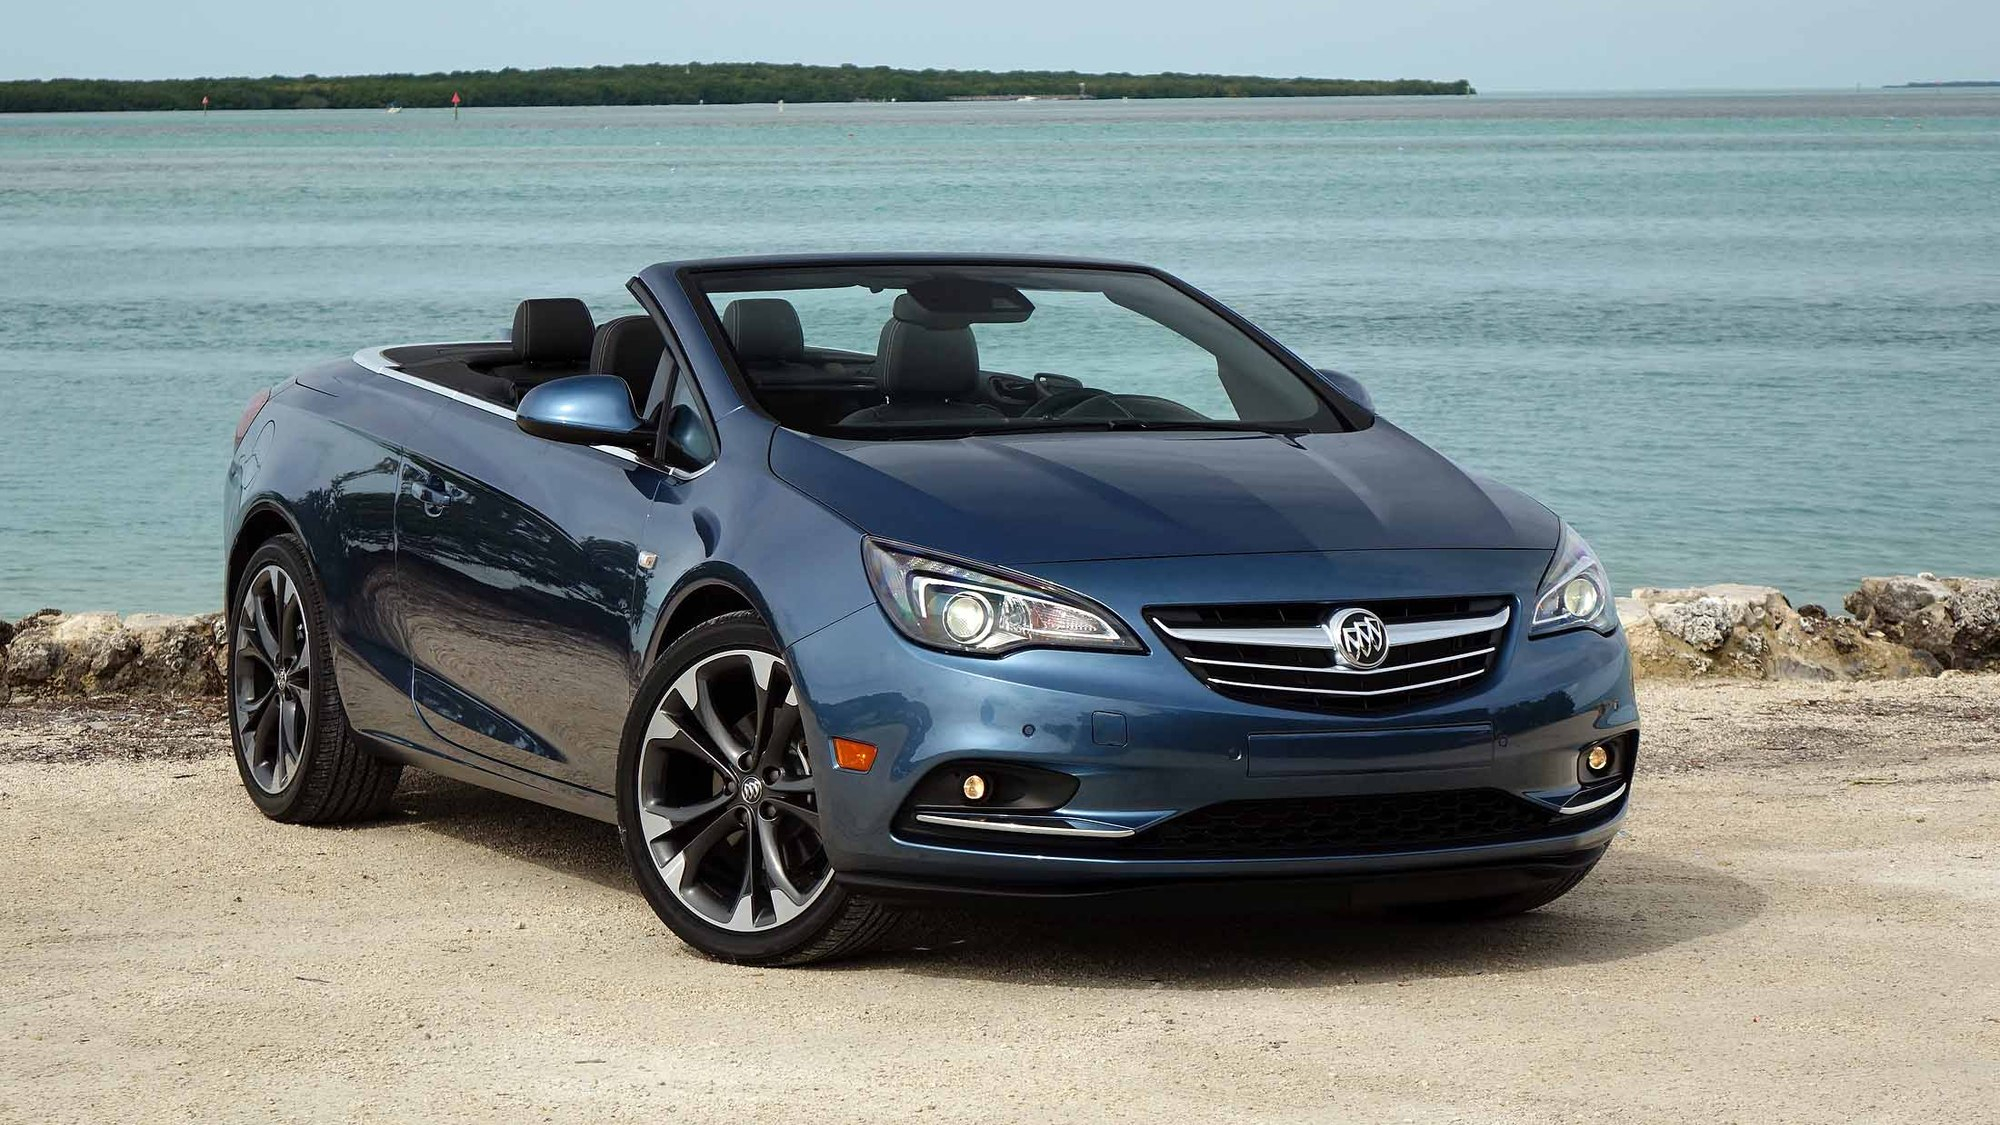 Car Spy Shots, News, Reviews, And Insights - Motor Authority New 2022 Buick Cascada Pictures, Remote Start, Release